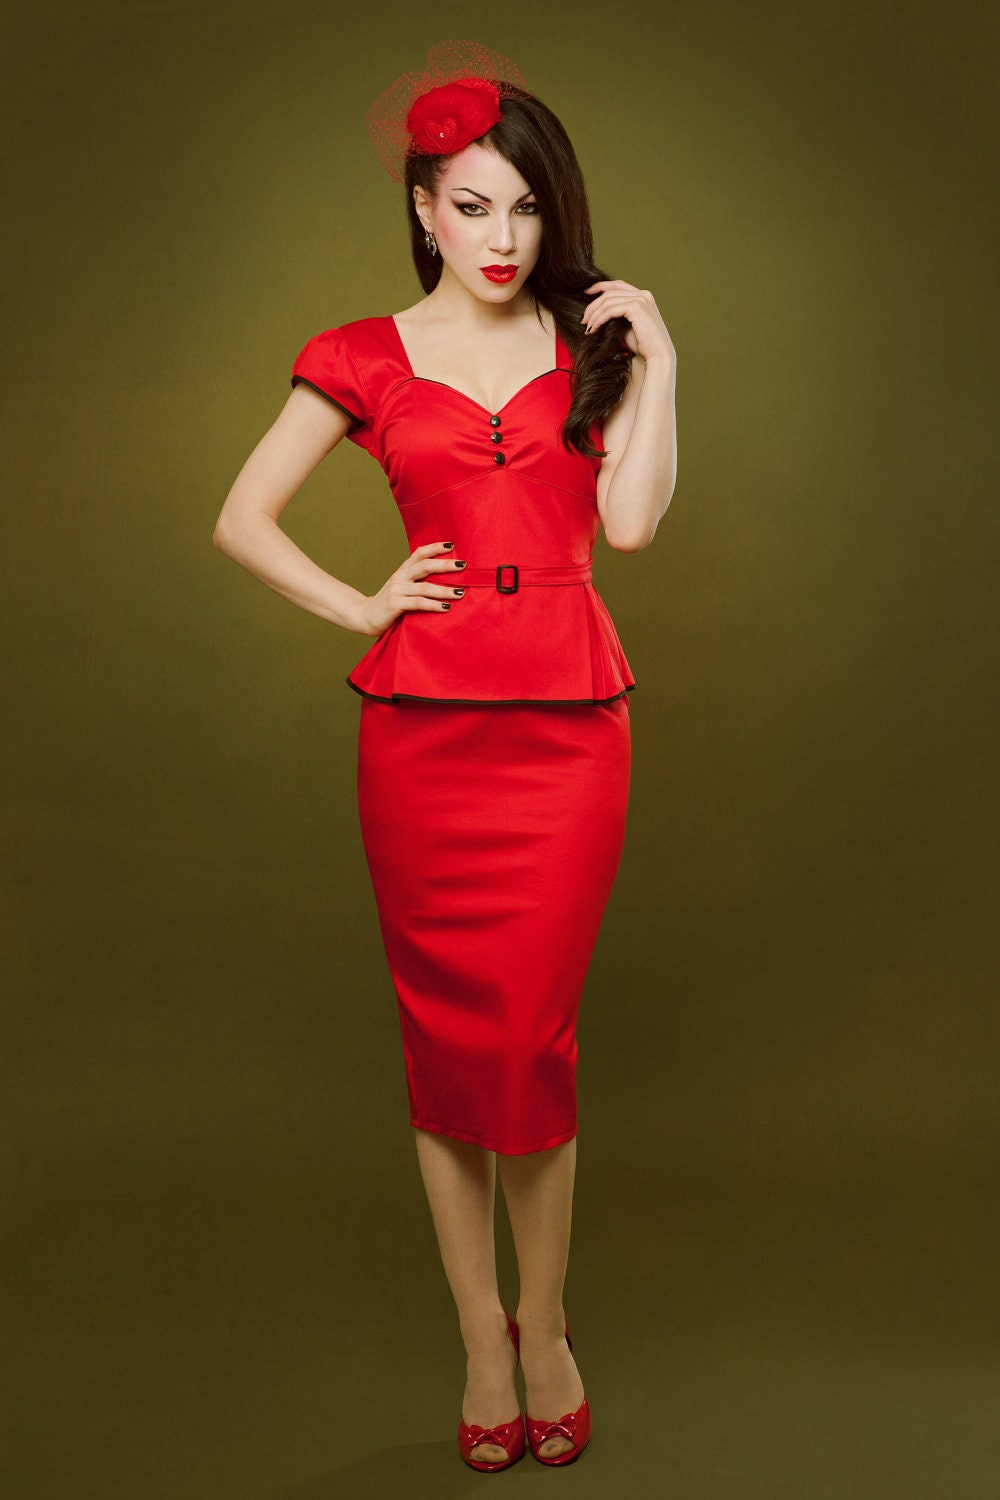 Pin up rockabilly red peplum dress by Hola Chica Clothing | Efinds2013